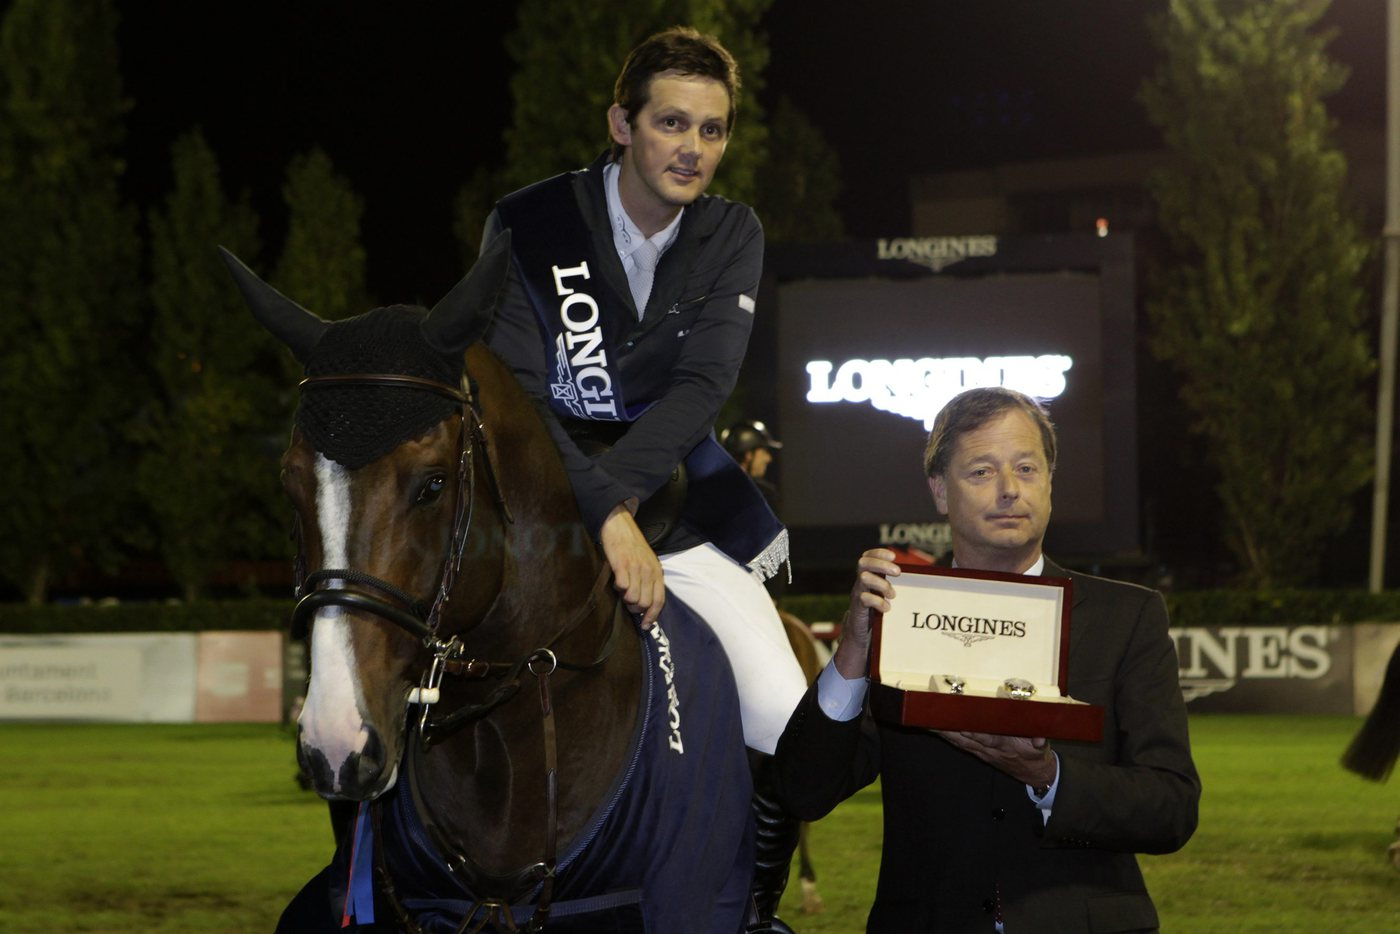 Longines Show Jumping Event: Billy Twomey, wins the Longines Grand Prix of the CSIO Barcelona 2010 2